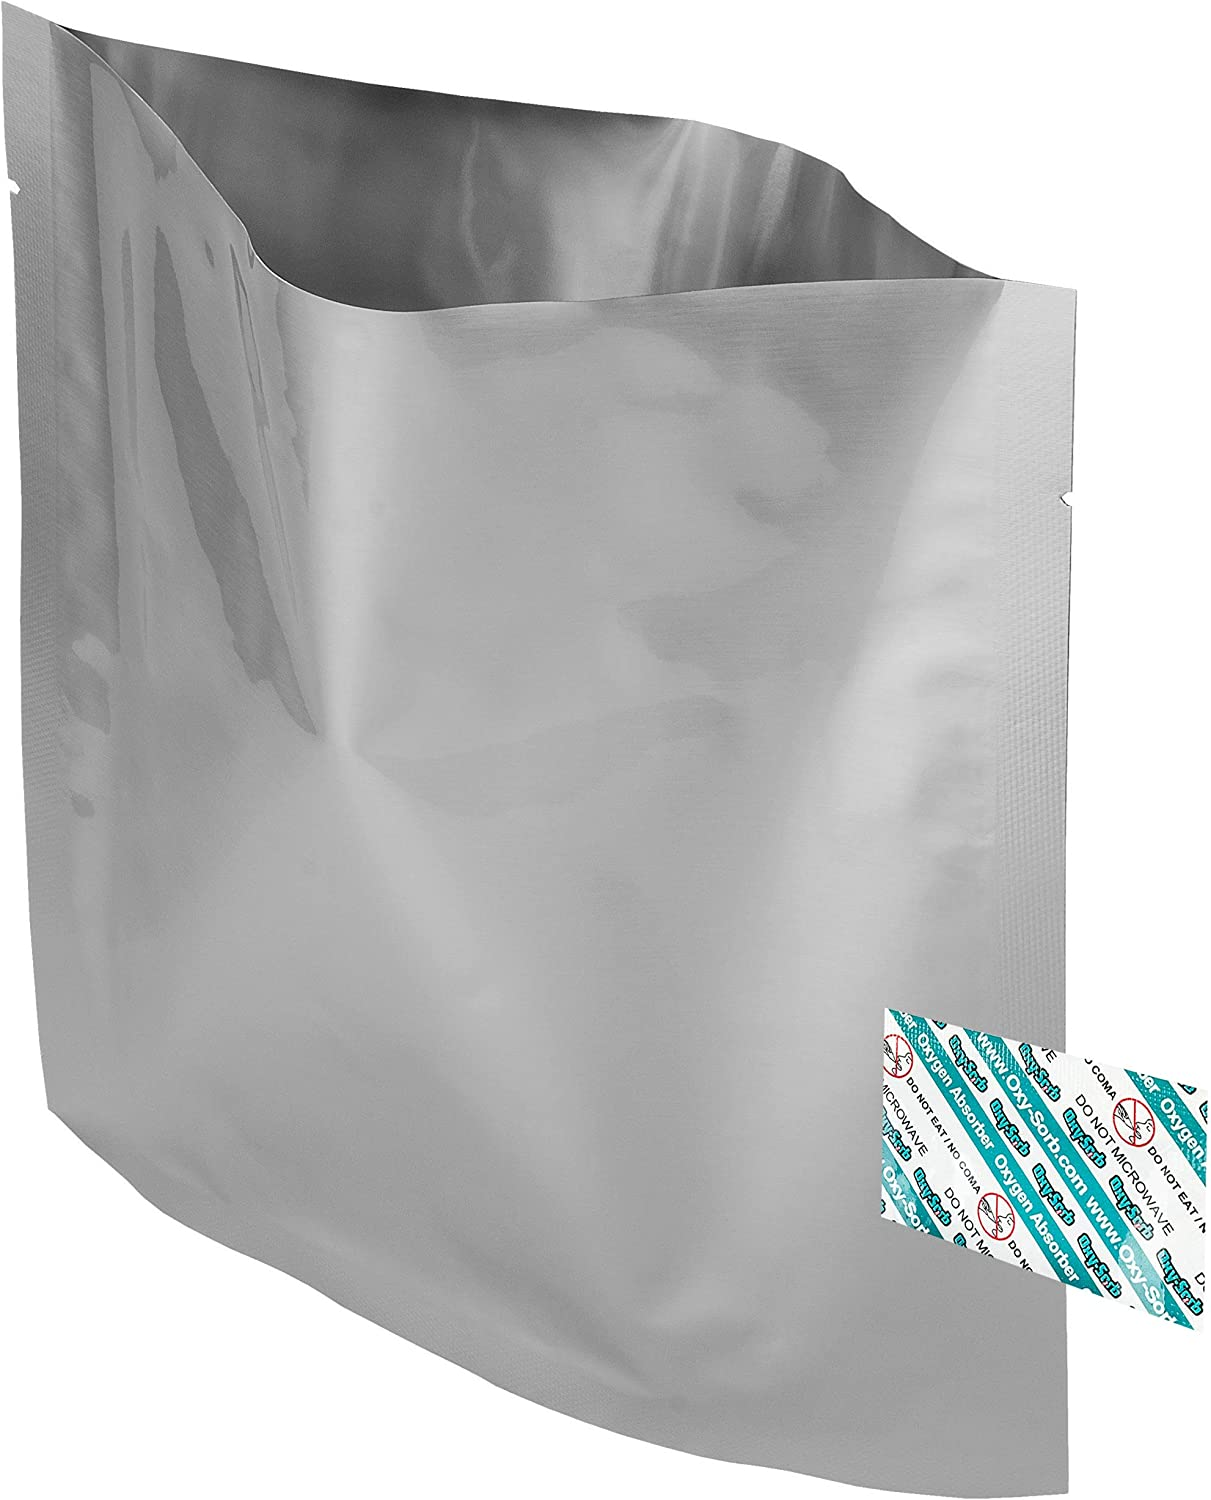 80 - 1 Quart Mylar Bags  Oxygen Absorbers for Dried Food  Long